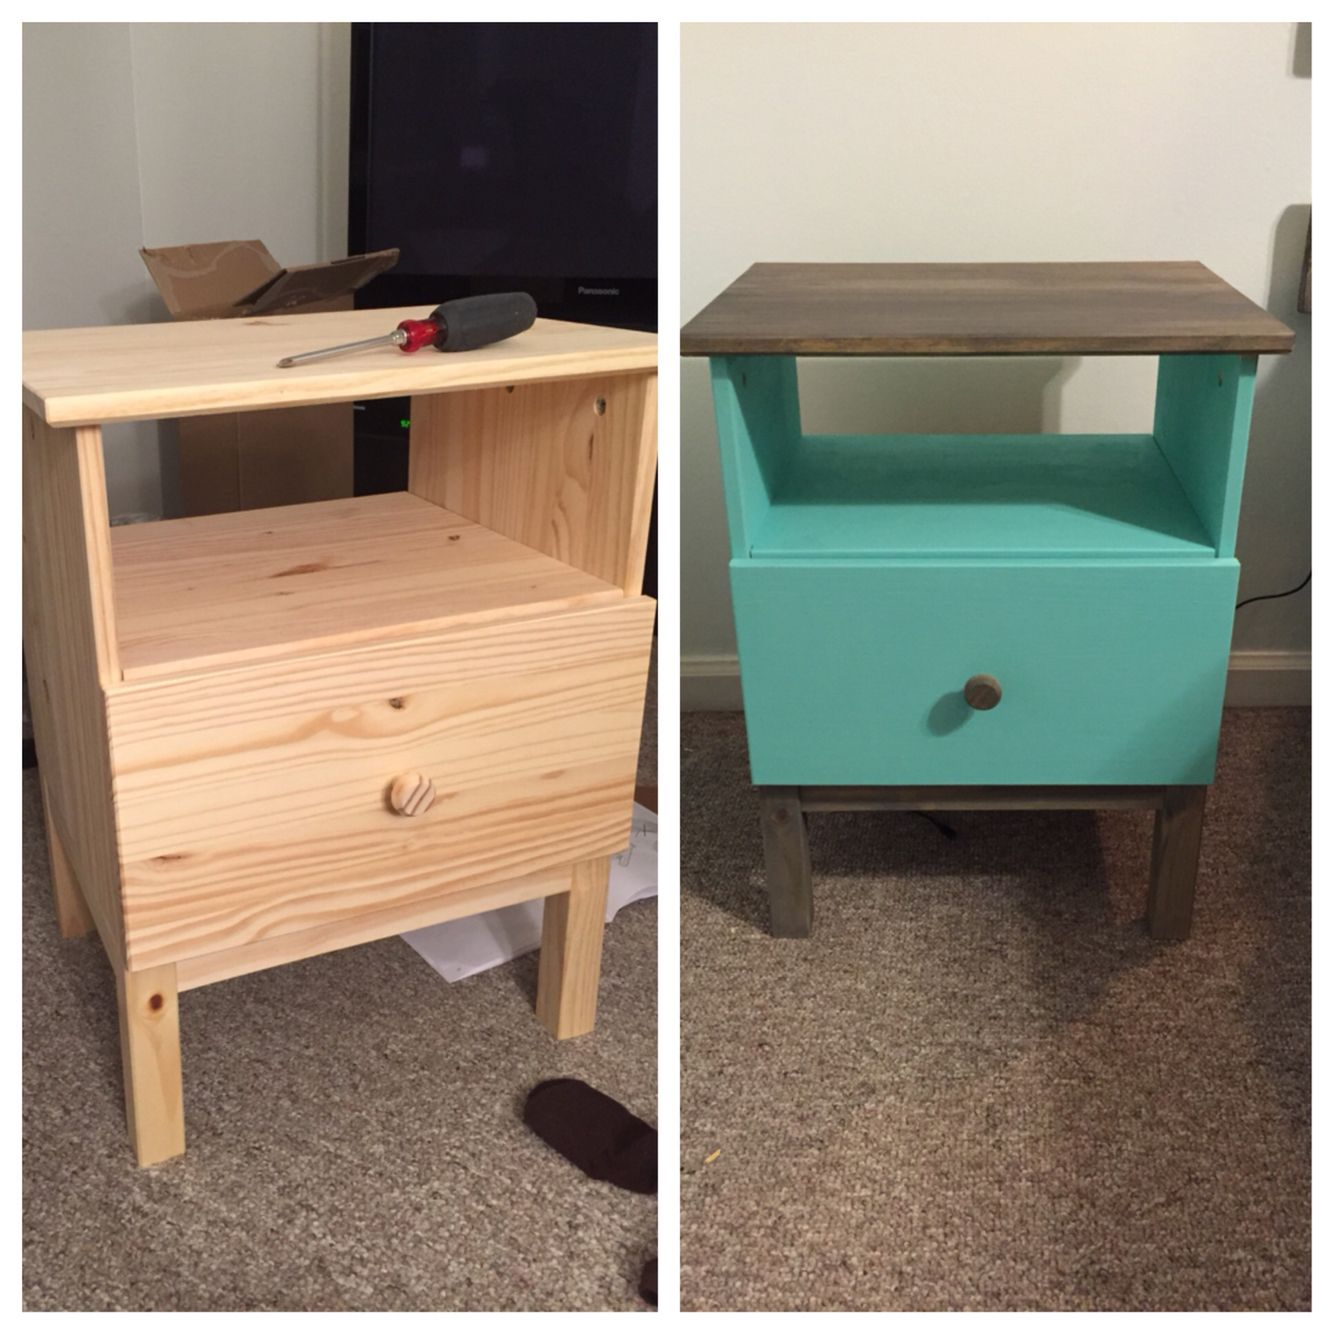 Ikea tarva nightstand hack repurpose furniture Repurpose ikea furniture